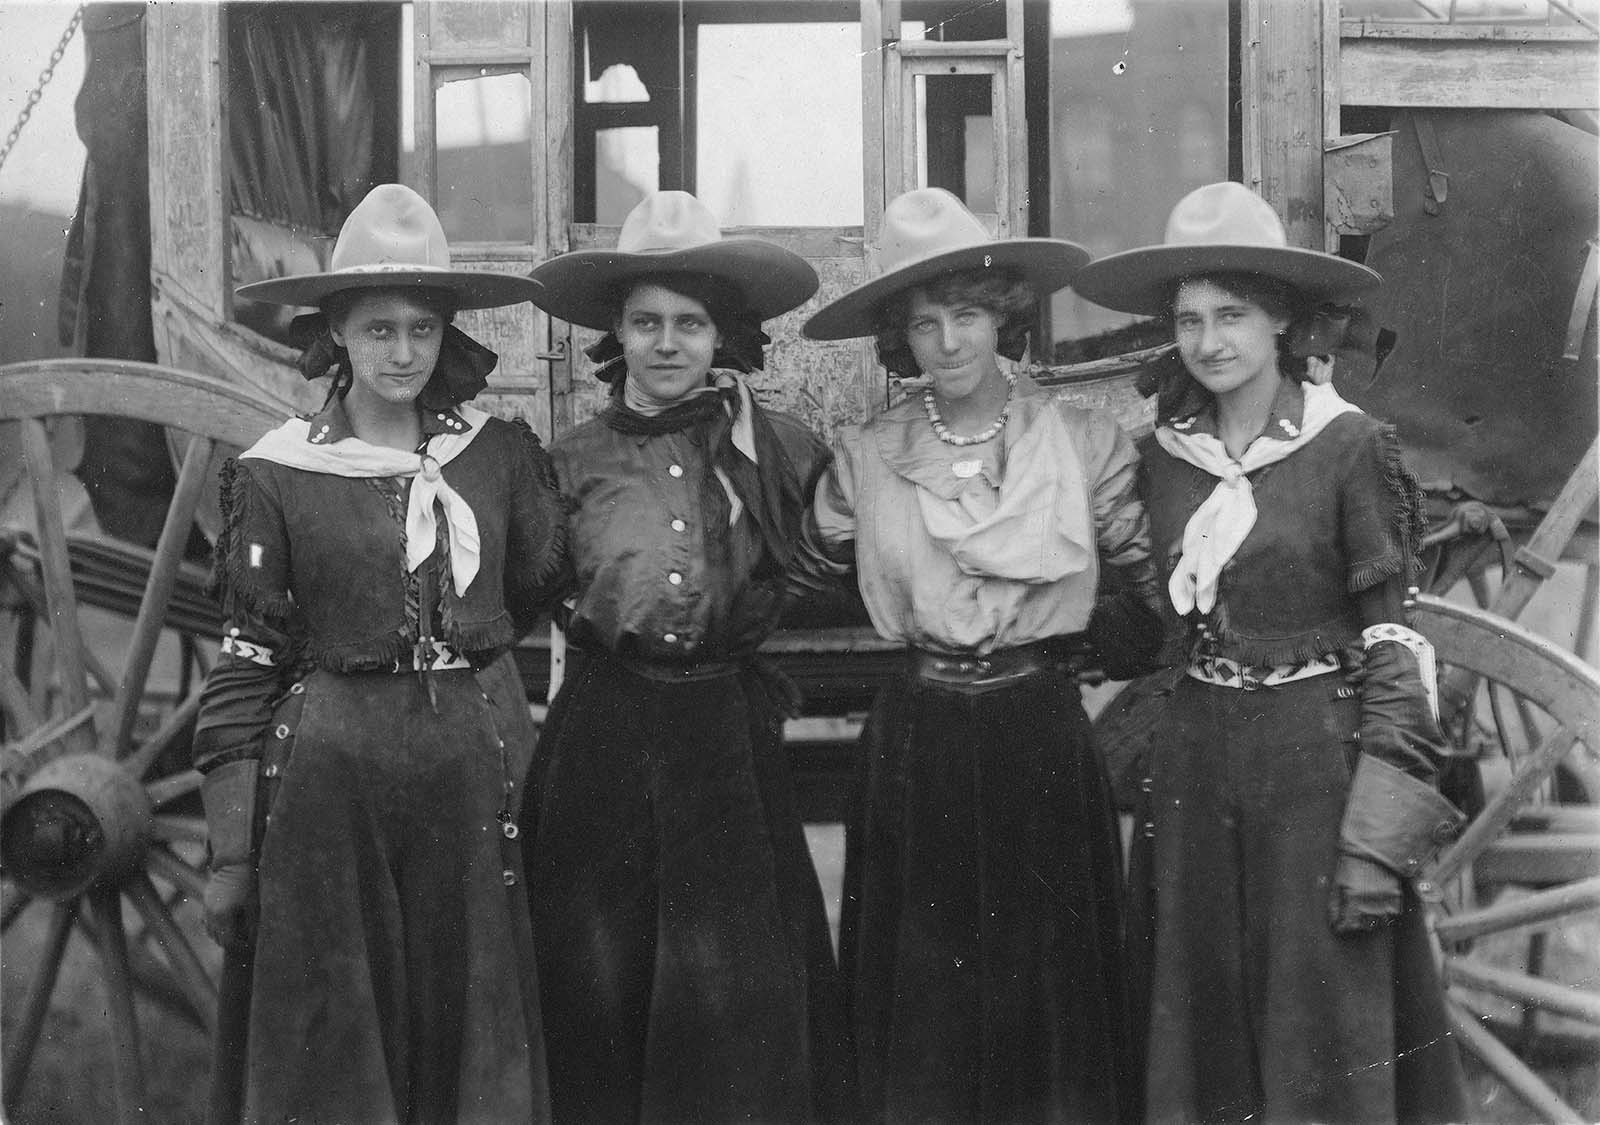 Four cowgirls posing in front of a stagecoach for the 101 Ranch Show, ca. 1916. Sepia toned photograph. MS 6 William F. Cody Collection, McCracken Research Library. P.69.1289